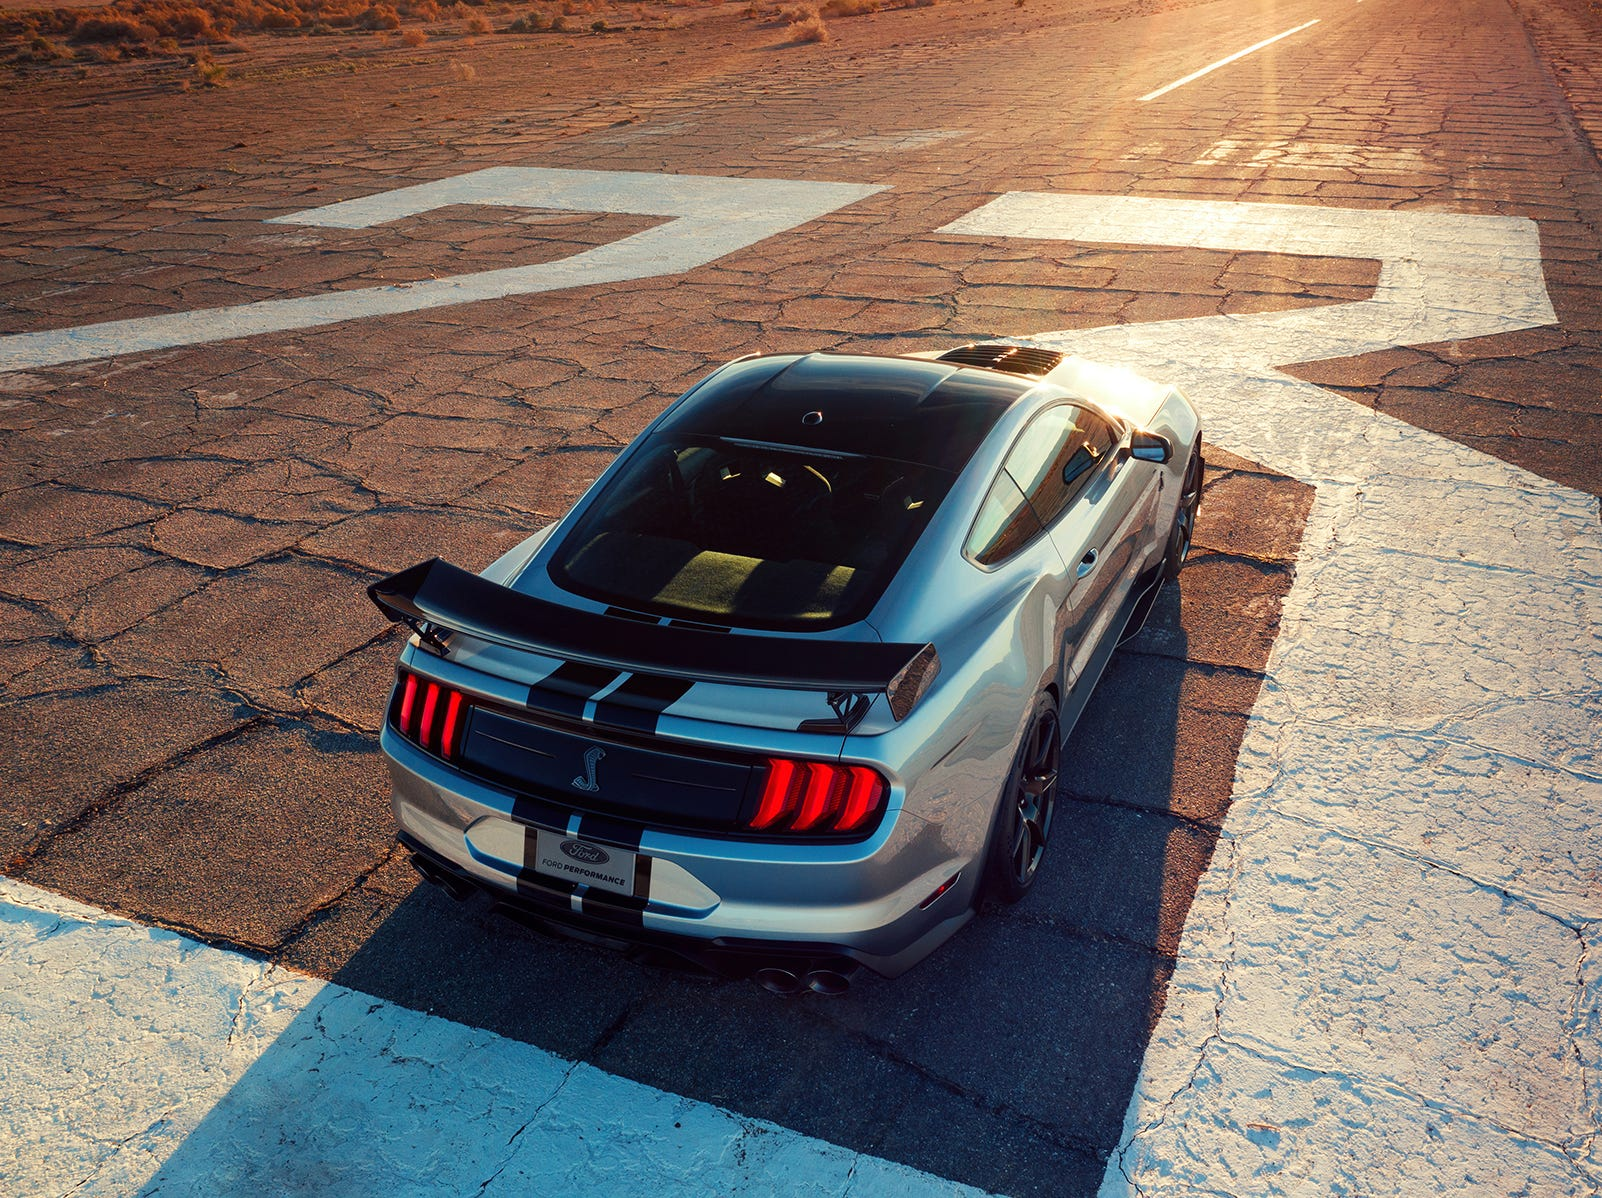 The all-new Shelby GT500 — the pinnacle of any pony car ever engineered by Ford Performance — delivers on its heritage with more than 700 horsepower for the quickest street-legal acceleration and most high-performance technology ever offered in a Ford Mustang.